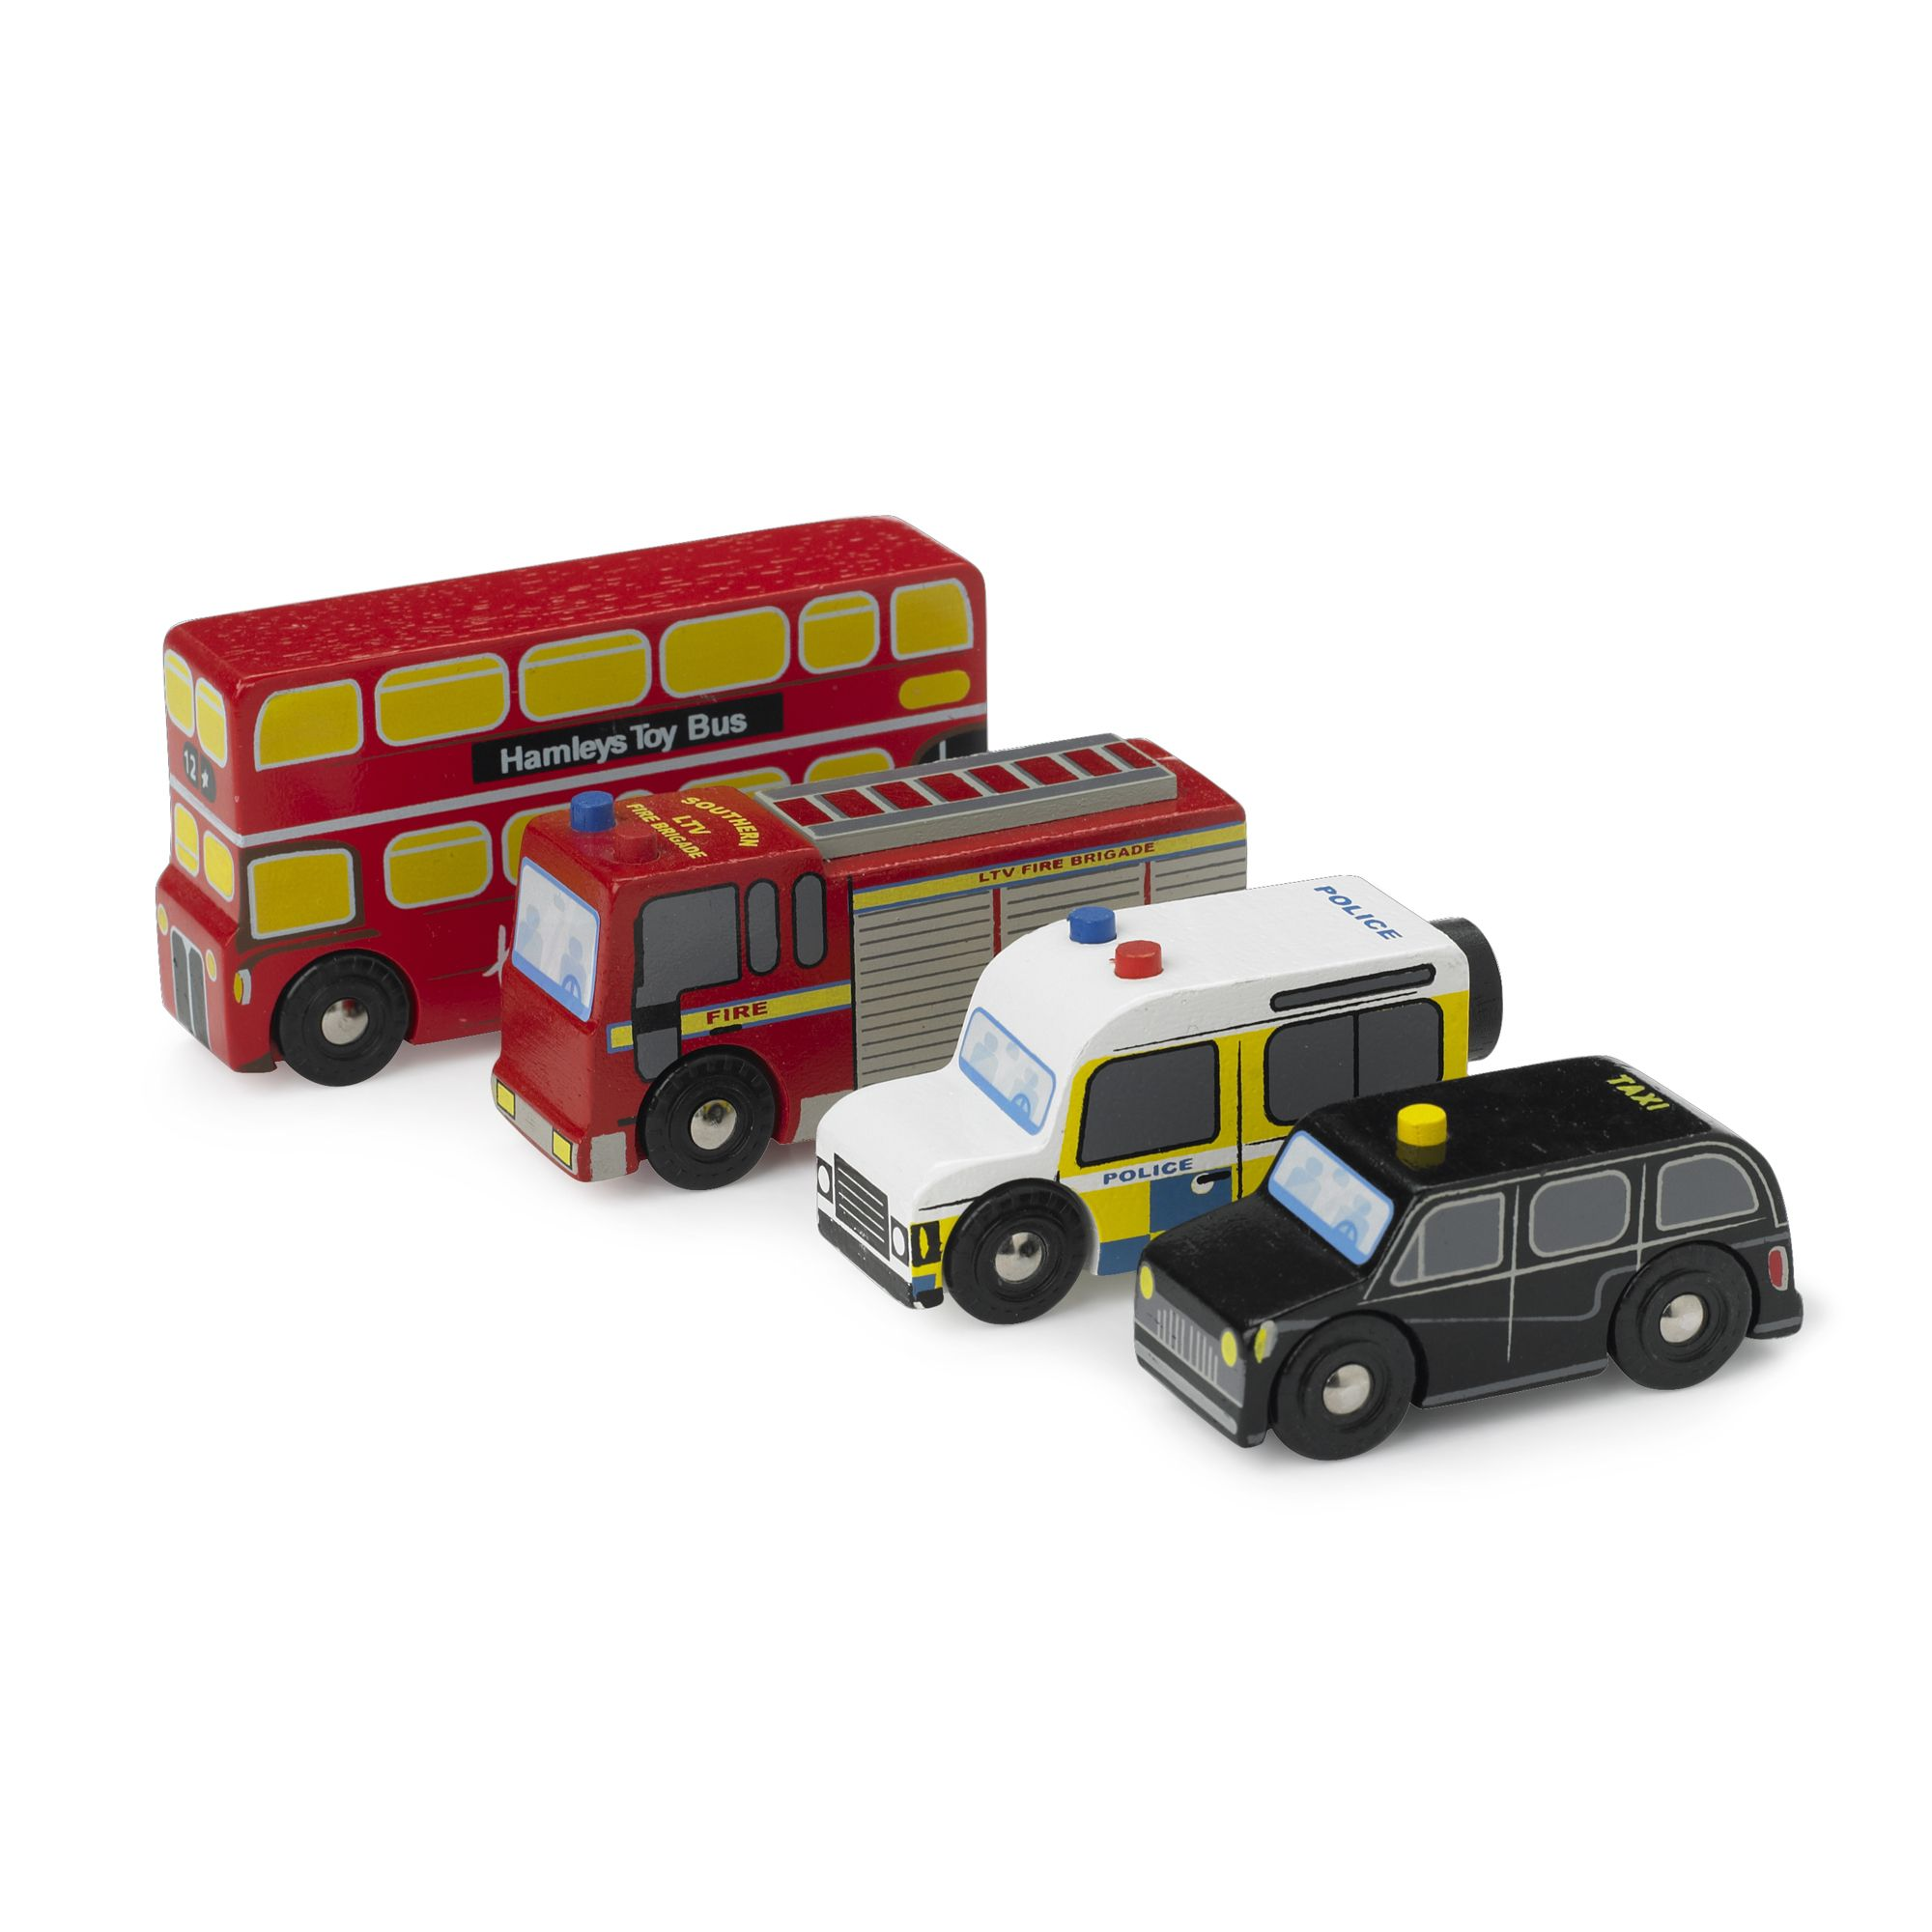 London vehicle set